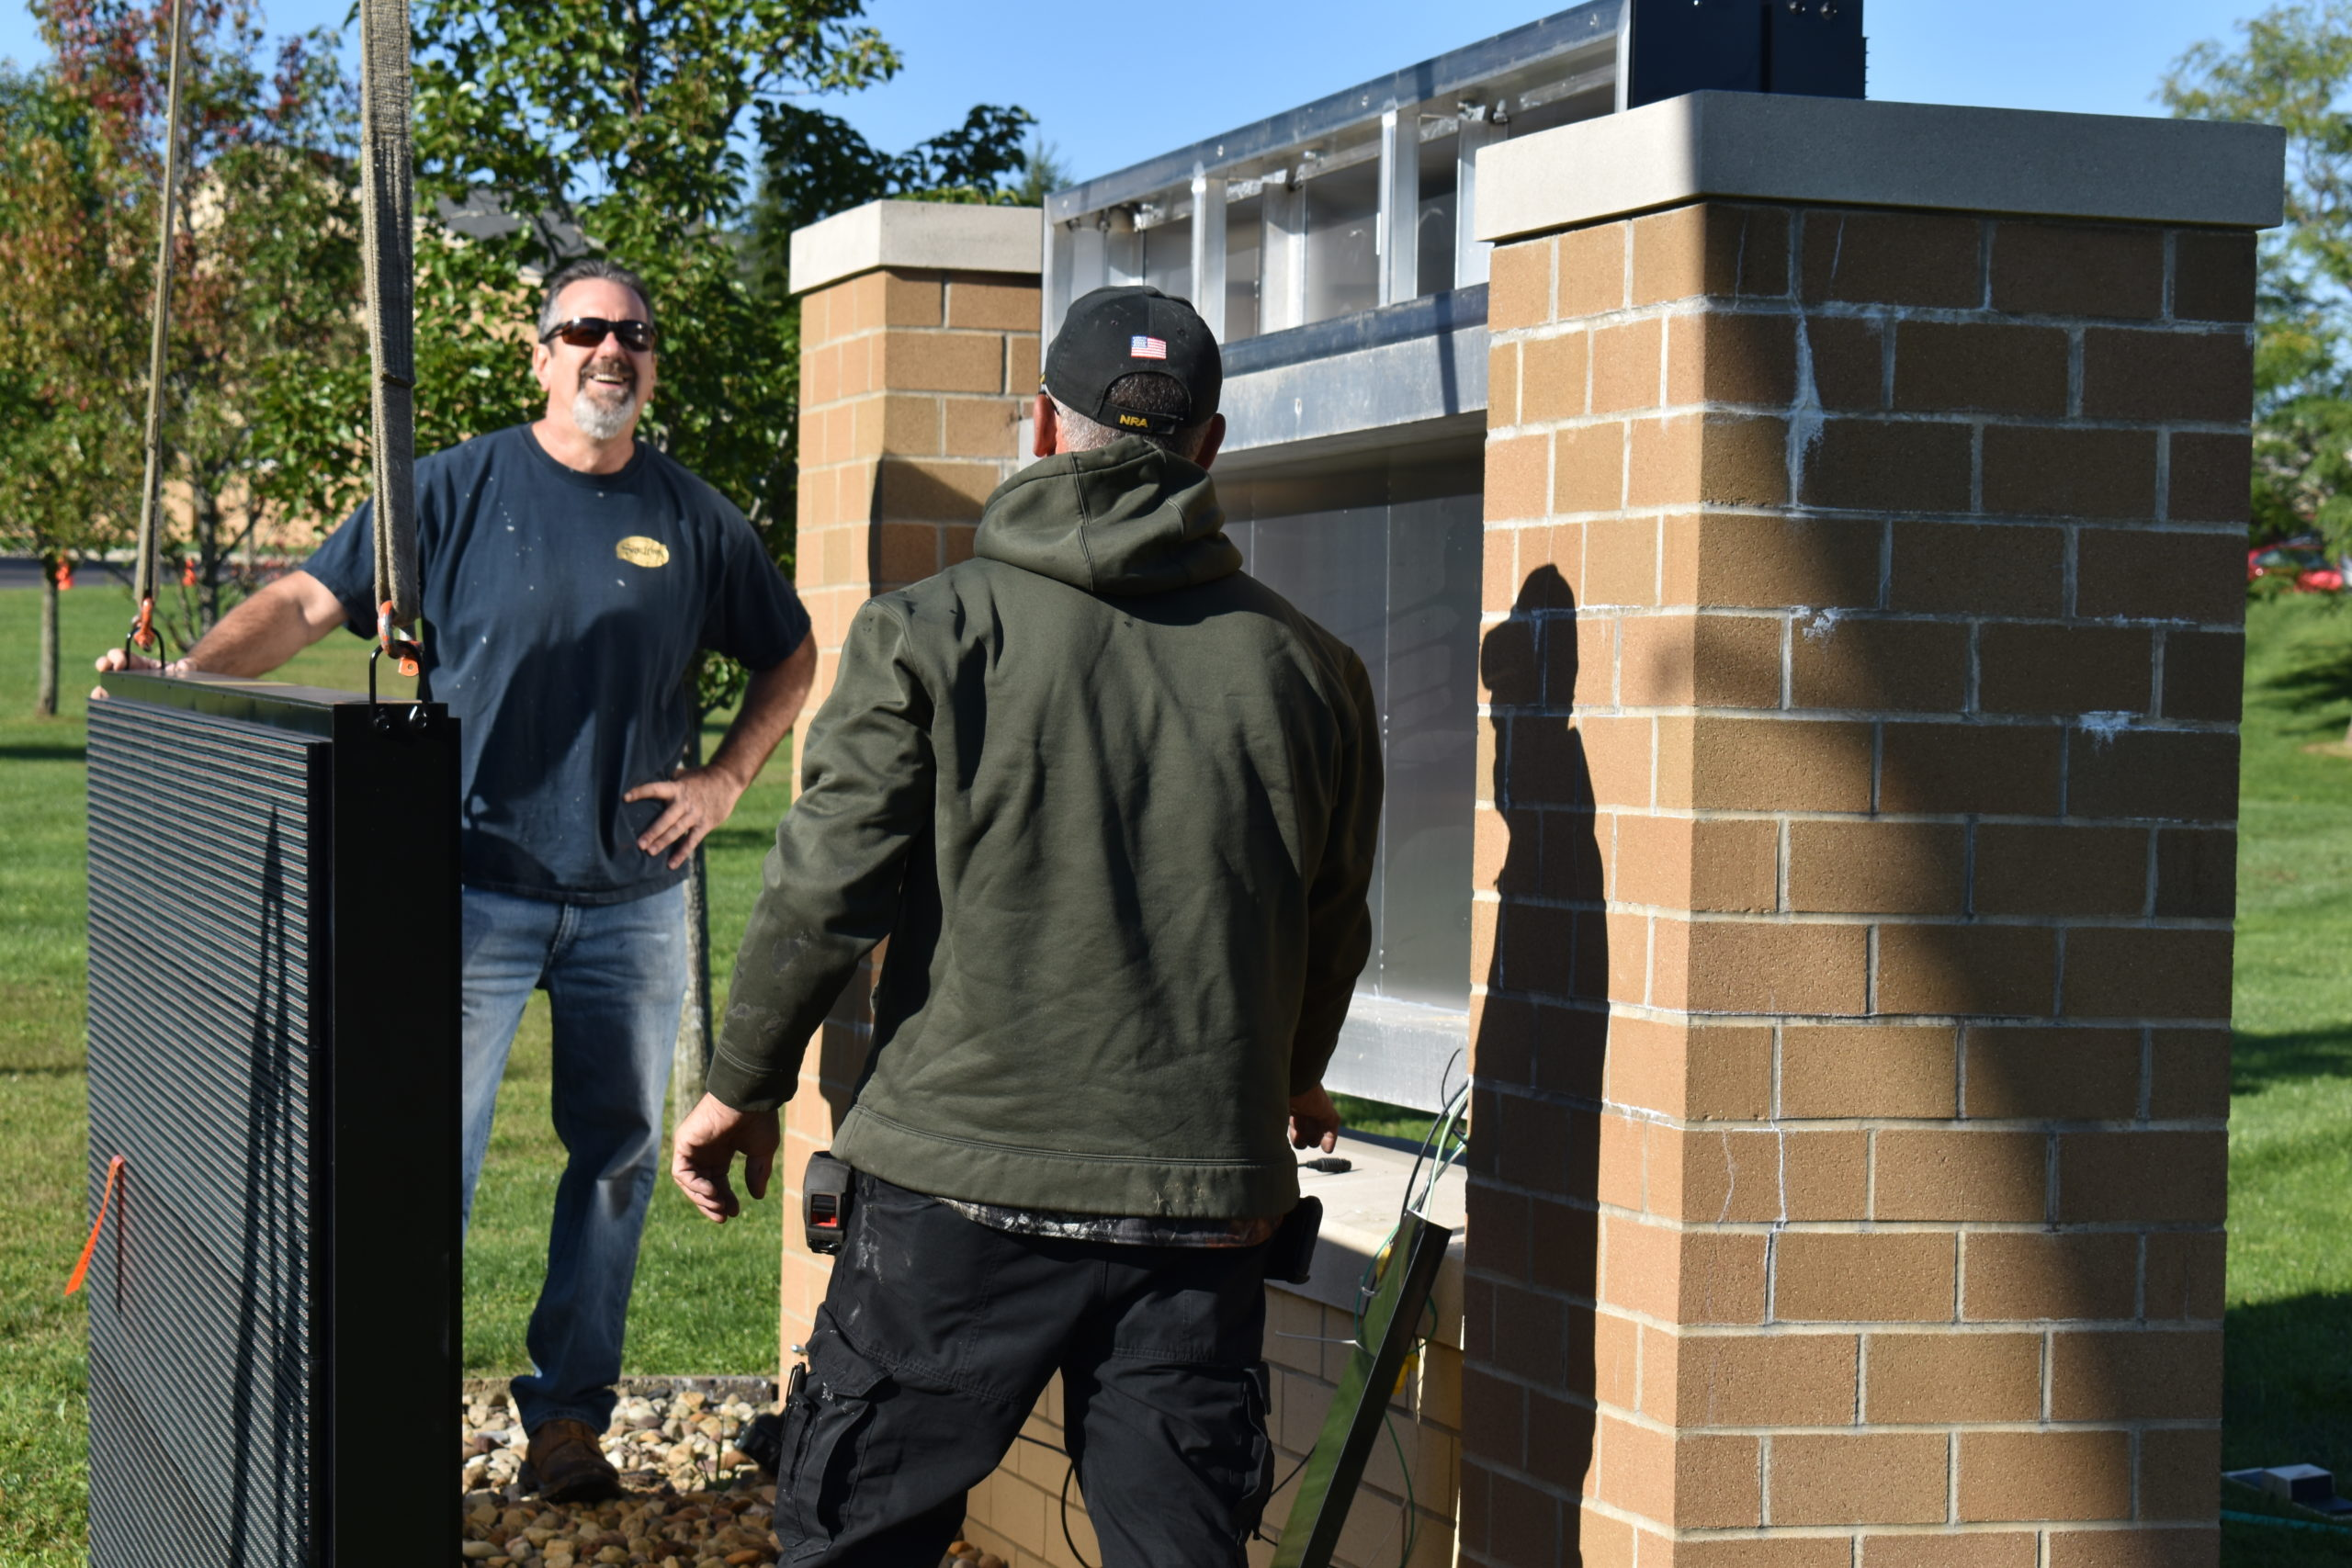 Chuck Kish, left, confers with Rick Madeline of Madeline Sign Lighting as they install the electronic sign at Brookfield schools on Bedford Road.